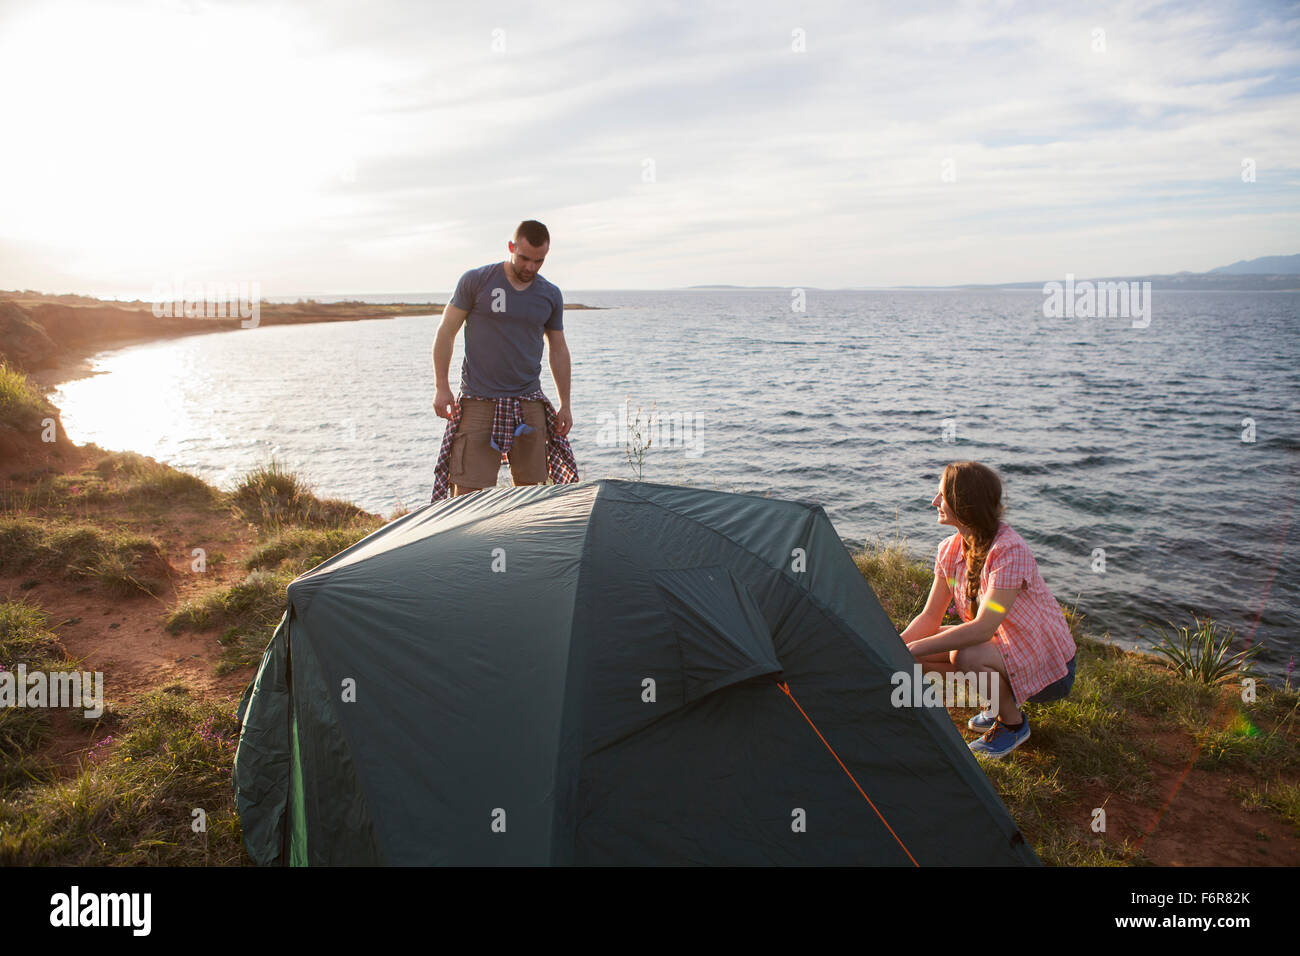 Young couple building up tent on water's edge - Stock Image